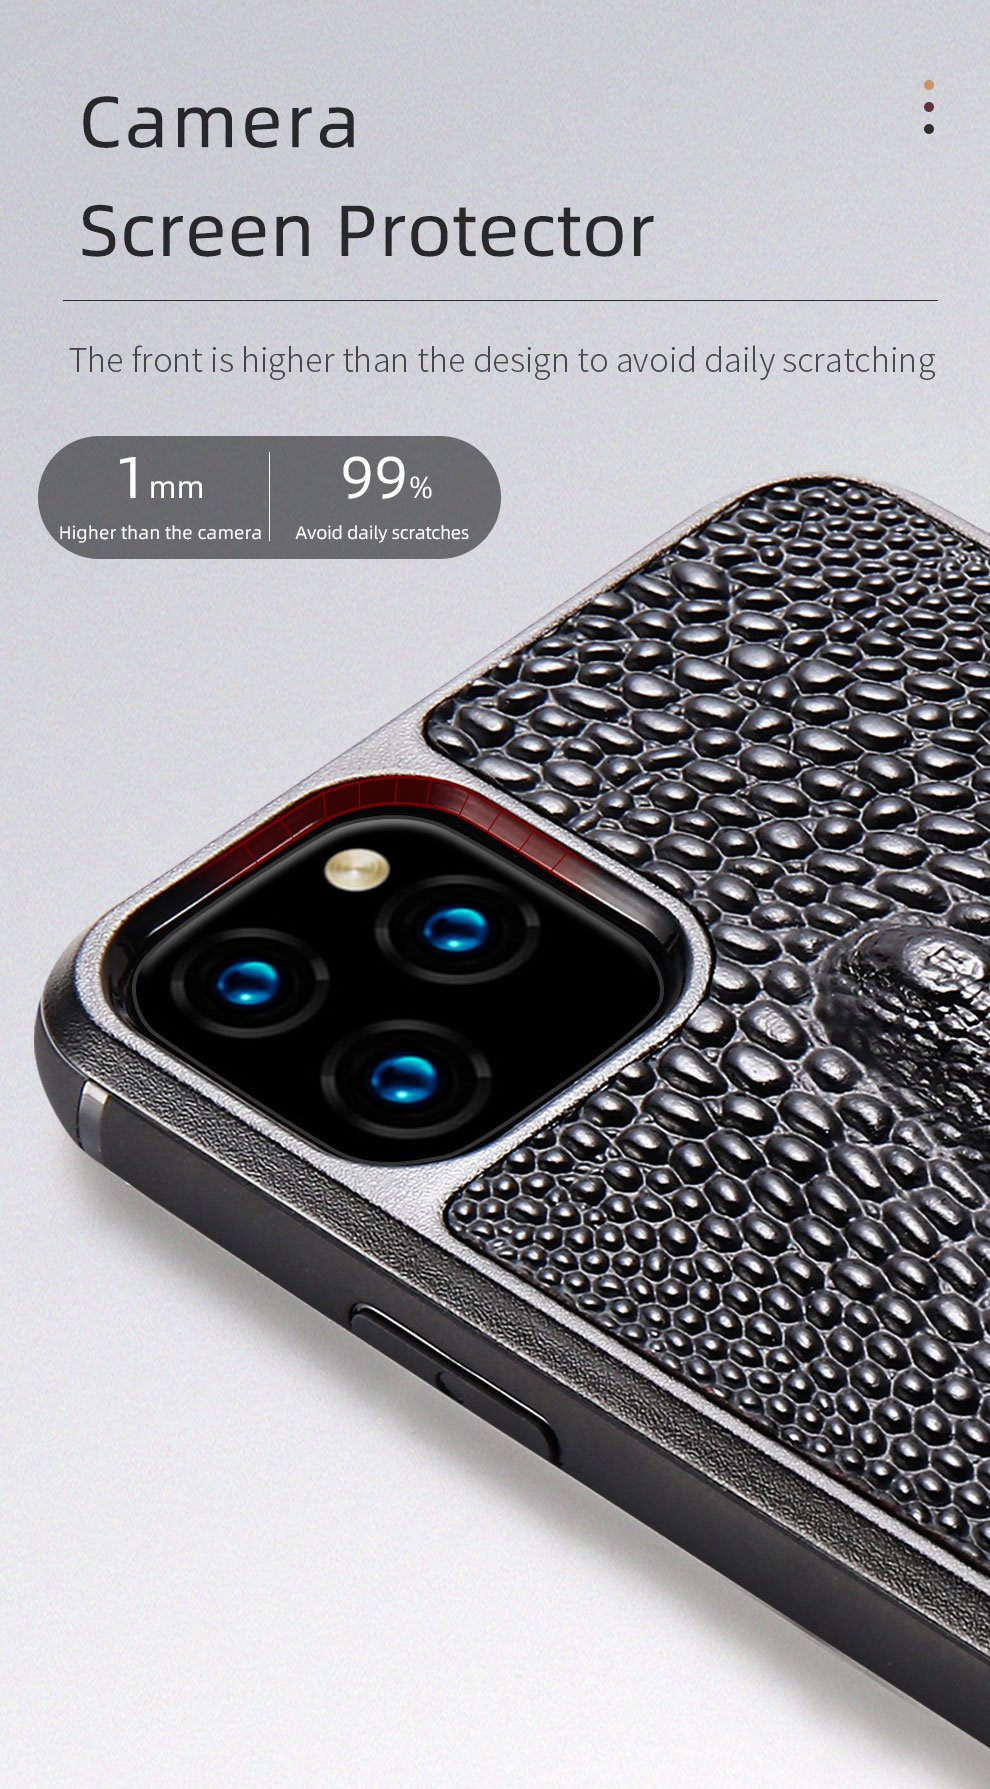 Luxury Leather 3D Crocodile Textured Phone Case For Apple iPhone 11 11 Pro Max X XS XS Max XR 7 8 6 6s 7 Plus 8 plus Made From Natural Cow Hide Leather